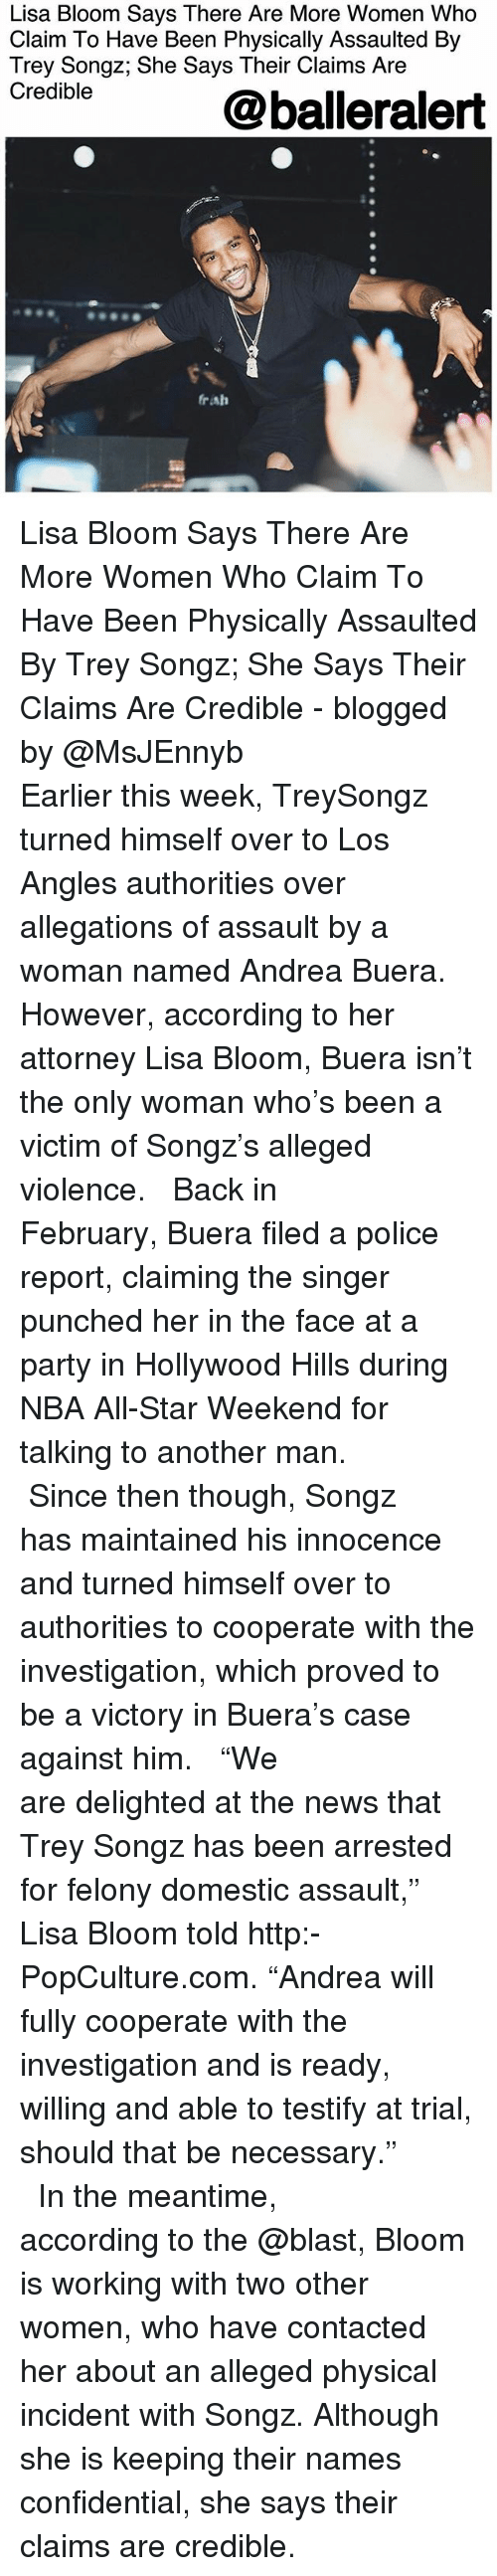 """nba all star weekend: Lisa Bloom Says There Are More Women Who  Claim To Have Been Physically Assaulted By  Trey Songz; She Says Their Claims Are  Credible  @balleralert  rah Lisa Bloom Says There Are More Women Who Claim To Have Been Physically Assaulted By Trey Songz; She Says Their Claims Are Credible - blogged by @MsJEnnyb ⠀⠀⠀⠀⠀⠀⠀⠀⠀ ⠀⠀⠀⠀⠀⠀⠀⠀⠀ Earlier this week, TreySongz turned himself over to Los Angles authorities over allegations of assault by a woman named Andrea Buera. However, according to her attorney Lisa Bloom, Buera isn't the only woman who's been a victim of Songz's alleged violence. ⠀⠀⠀⠀⠀⠀⠀⠀⠀ ⠀⠀⠀⠀⠀⠀⠀⠀⠀ Back in February, Buera filed a police report, claiming the singer punched her in the face at a party in Hollywood Hills during NBA All-Star Weekend for talking to another man. ⠀⠀⠀⠀⠀⠀⠀⠀⠀ ⠀⠀⠀⠀⠀⠀⠀⠀⠀ Since then though, Songz has maintained his innocence and turned himself over to authorities to cooperate with the investigation, which proved to be a victory in Buera's case against him. ⠀⠀⠀⠀⠀⠀⠀⠀⠀ ⠀⠀⠀⠀⠀⠀⠀⠀⠀ """"We are delighted at the news that Trey Songz has been arrested for felony domestic assault,"""" Lisa Bloom told http:-PopCulture.com. """"Andrea will fully cooperate with the investigation and is ready, willing and able to testify at trial, should that be necessary."""" ⠀⠀⠀⠀⠀⠀⠀⠀⠀ ⠀⠀⠀⠀⠀⠀⠀⠀⠀ In the meantime, according to the @blast, Bloom is working with two other women, who have contacted her about an alleged physical incident with Songz. Although she is keeping their names confidential, she says their claims are credible."""